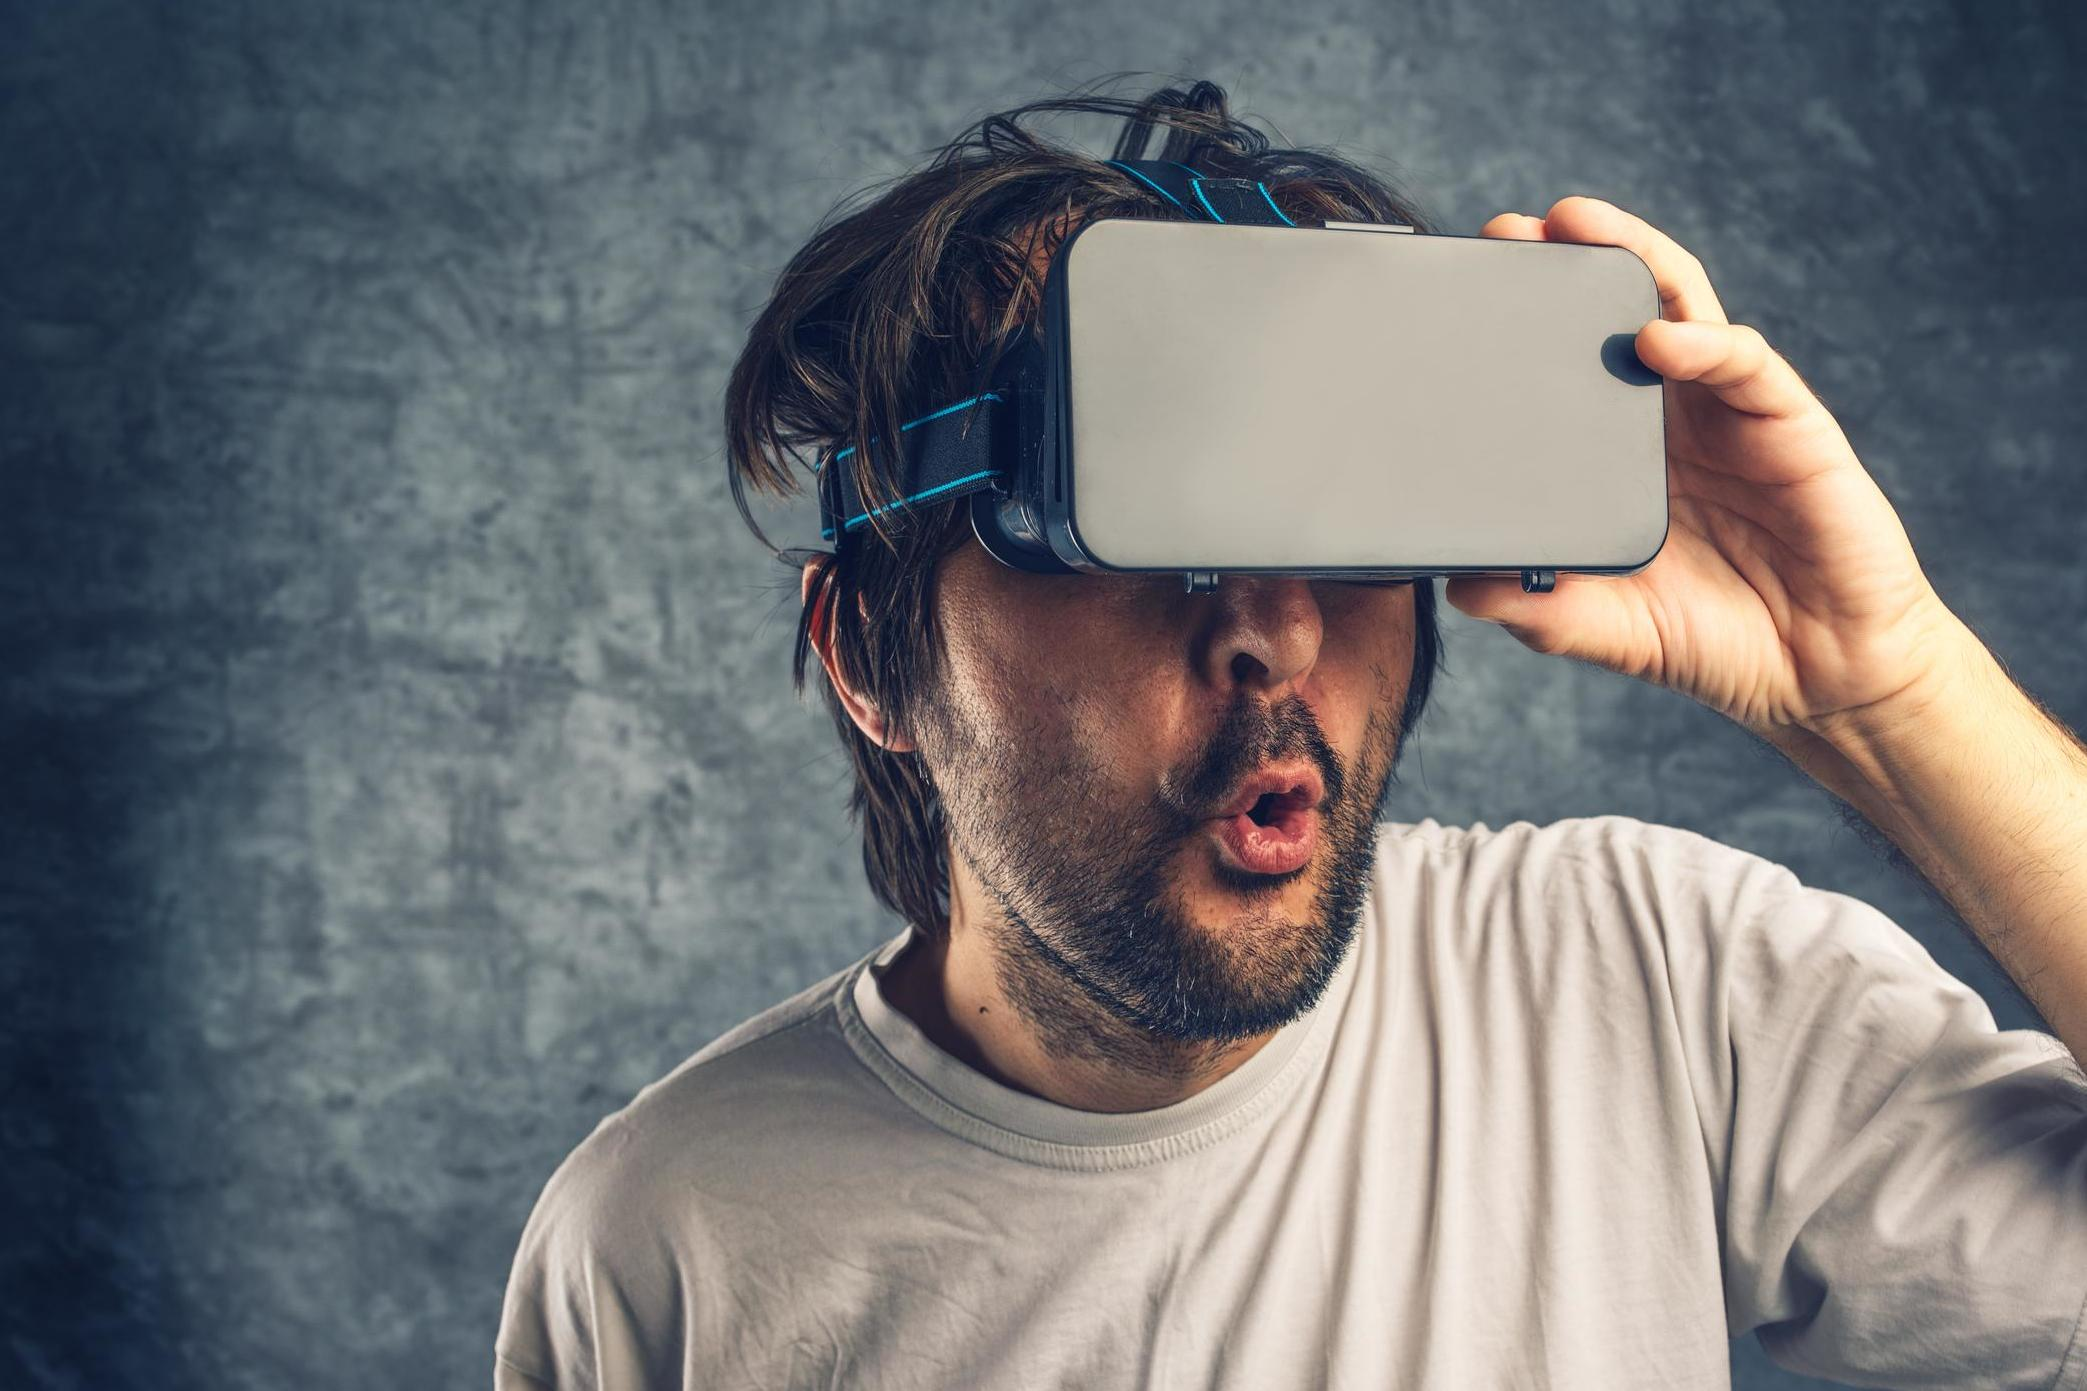 Virtual reality pornography could raise issues about consent, researchers warn